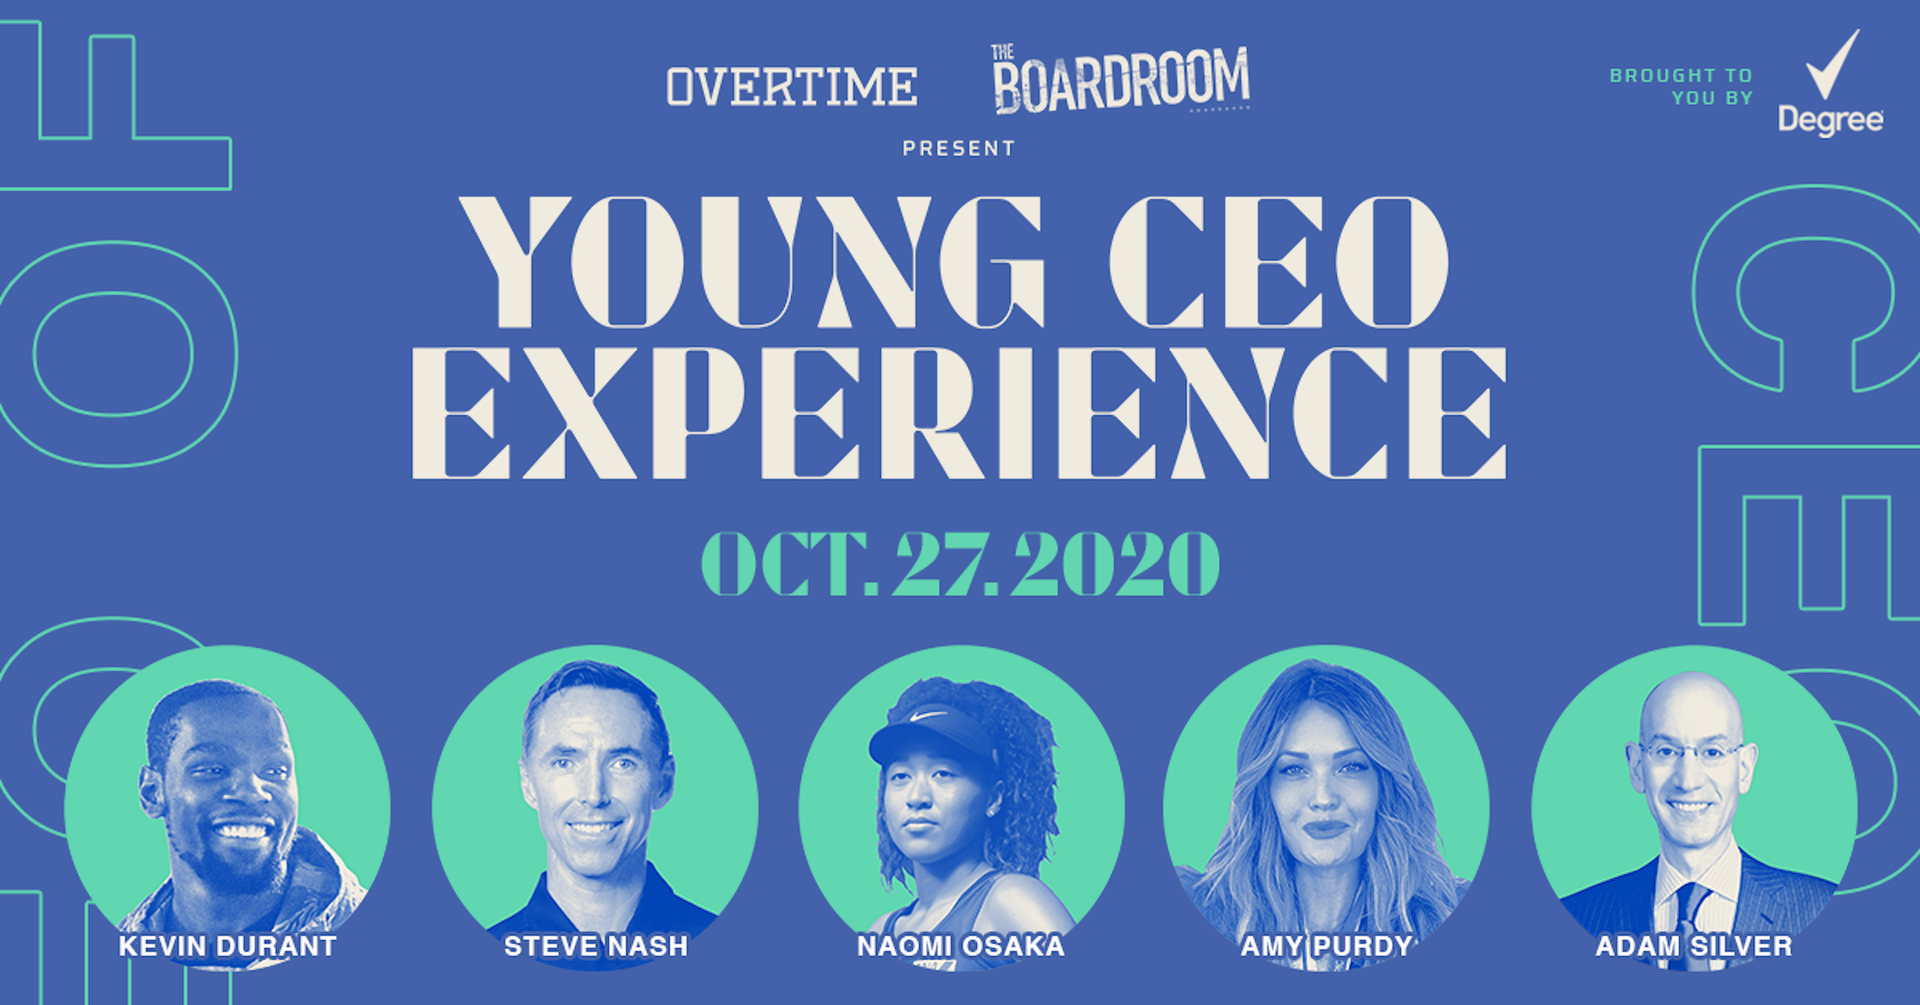 Young CEO. It's not a conference, it's an experience